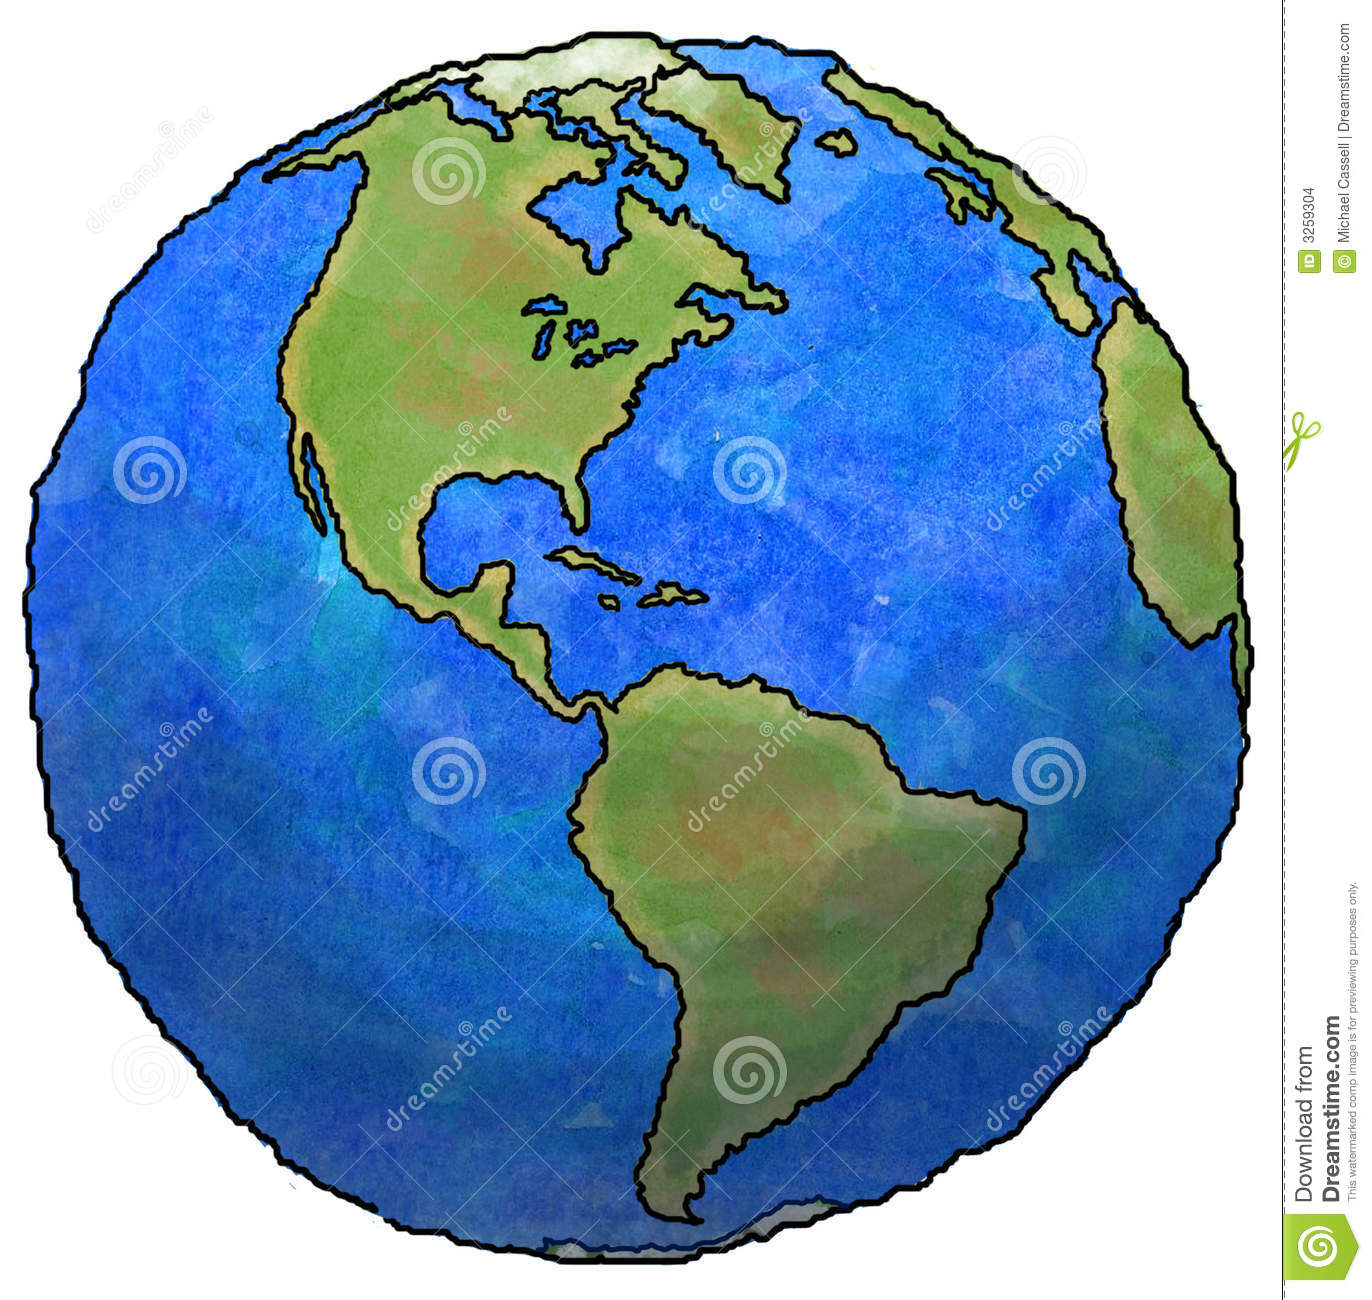 More similar stock images of ` Planet earth `